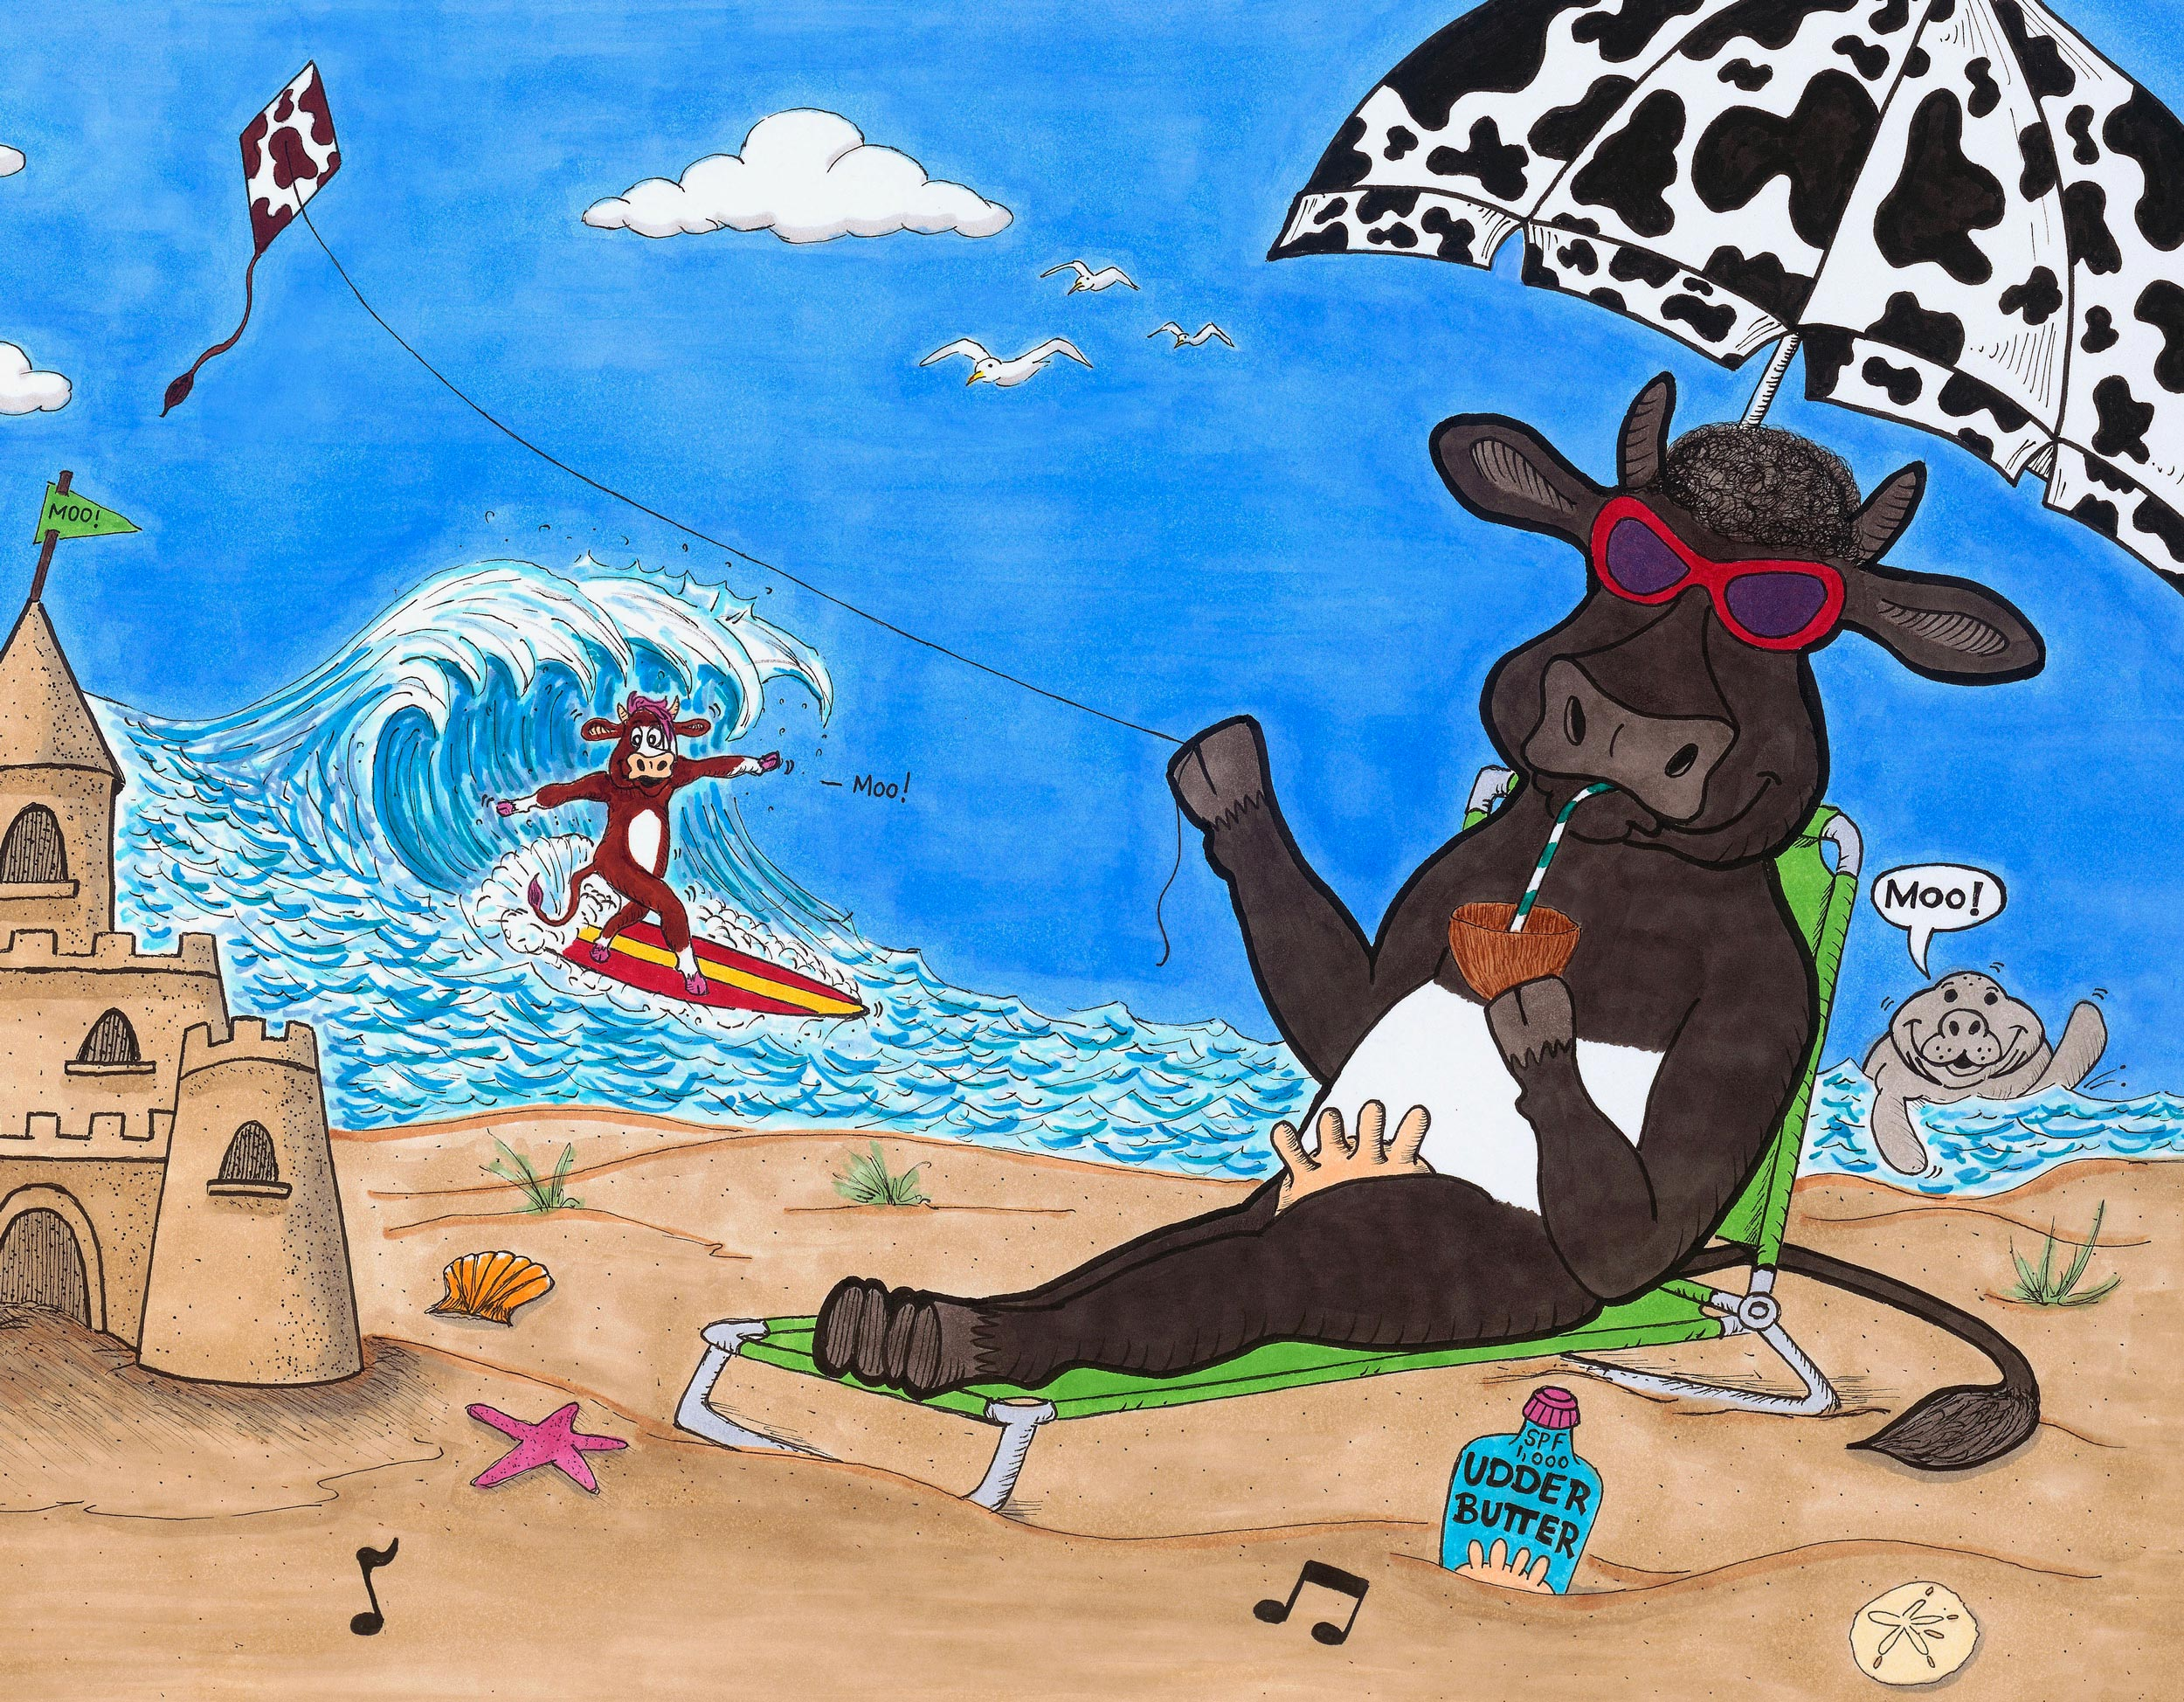 Surfs up! - Moooo!